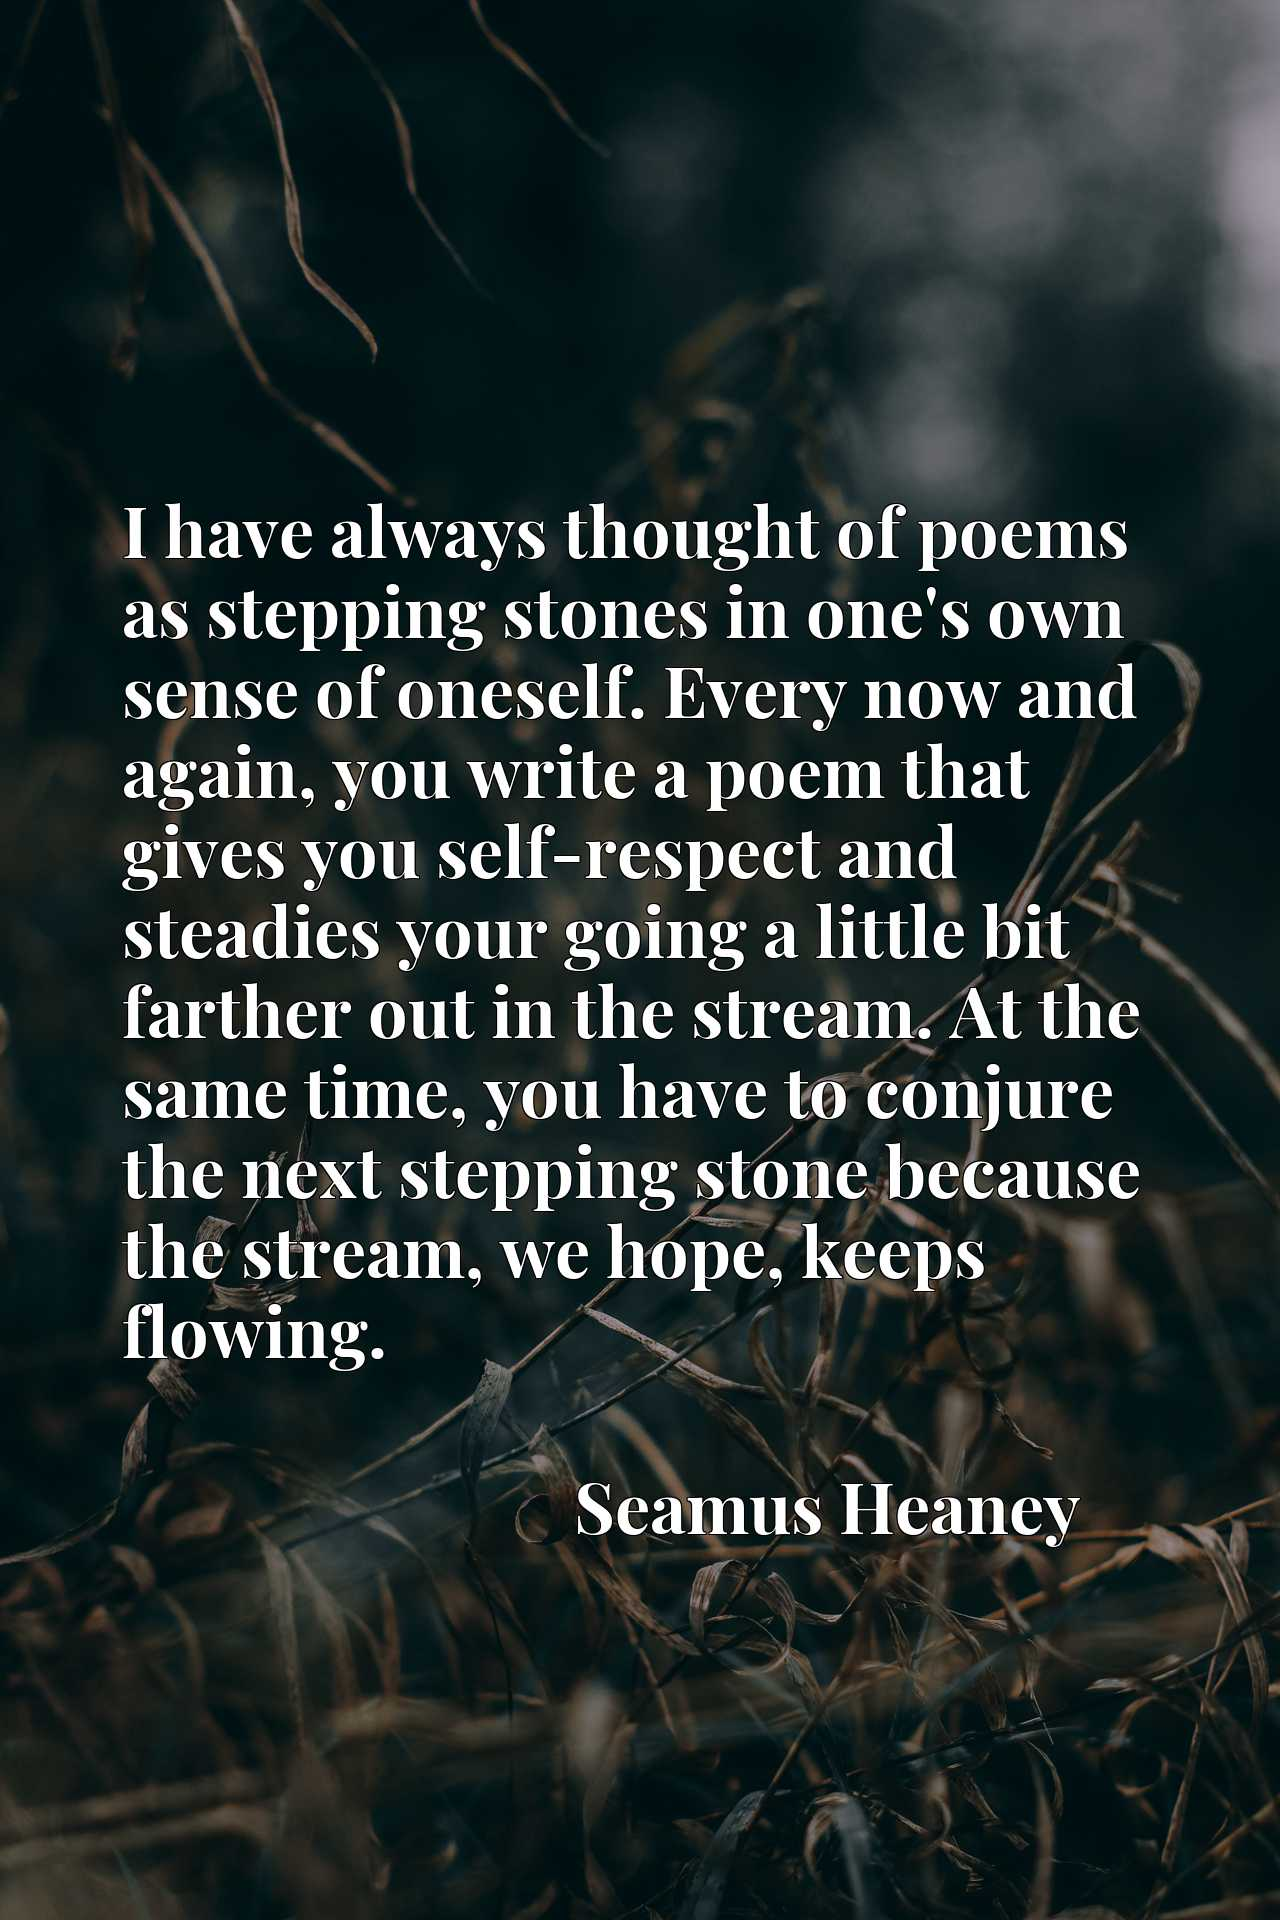 I have always thought of poems as stepping stones in one's own sense of oneself. Every now and again, you write a poem that gives you self-respect and steadies your going a little bit farther out in the stream. At the same time, you have to conjure the next stepping stone because the stream, we hope, keeps flowing.